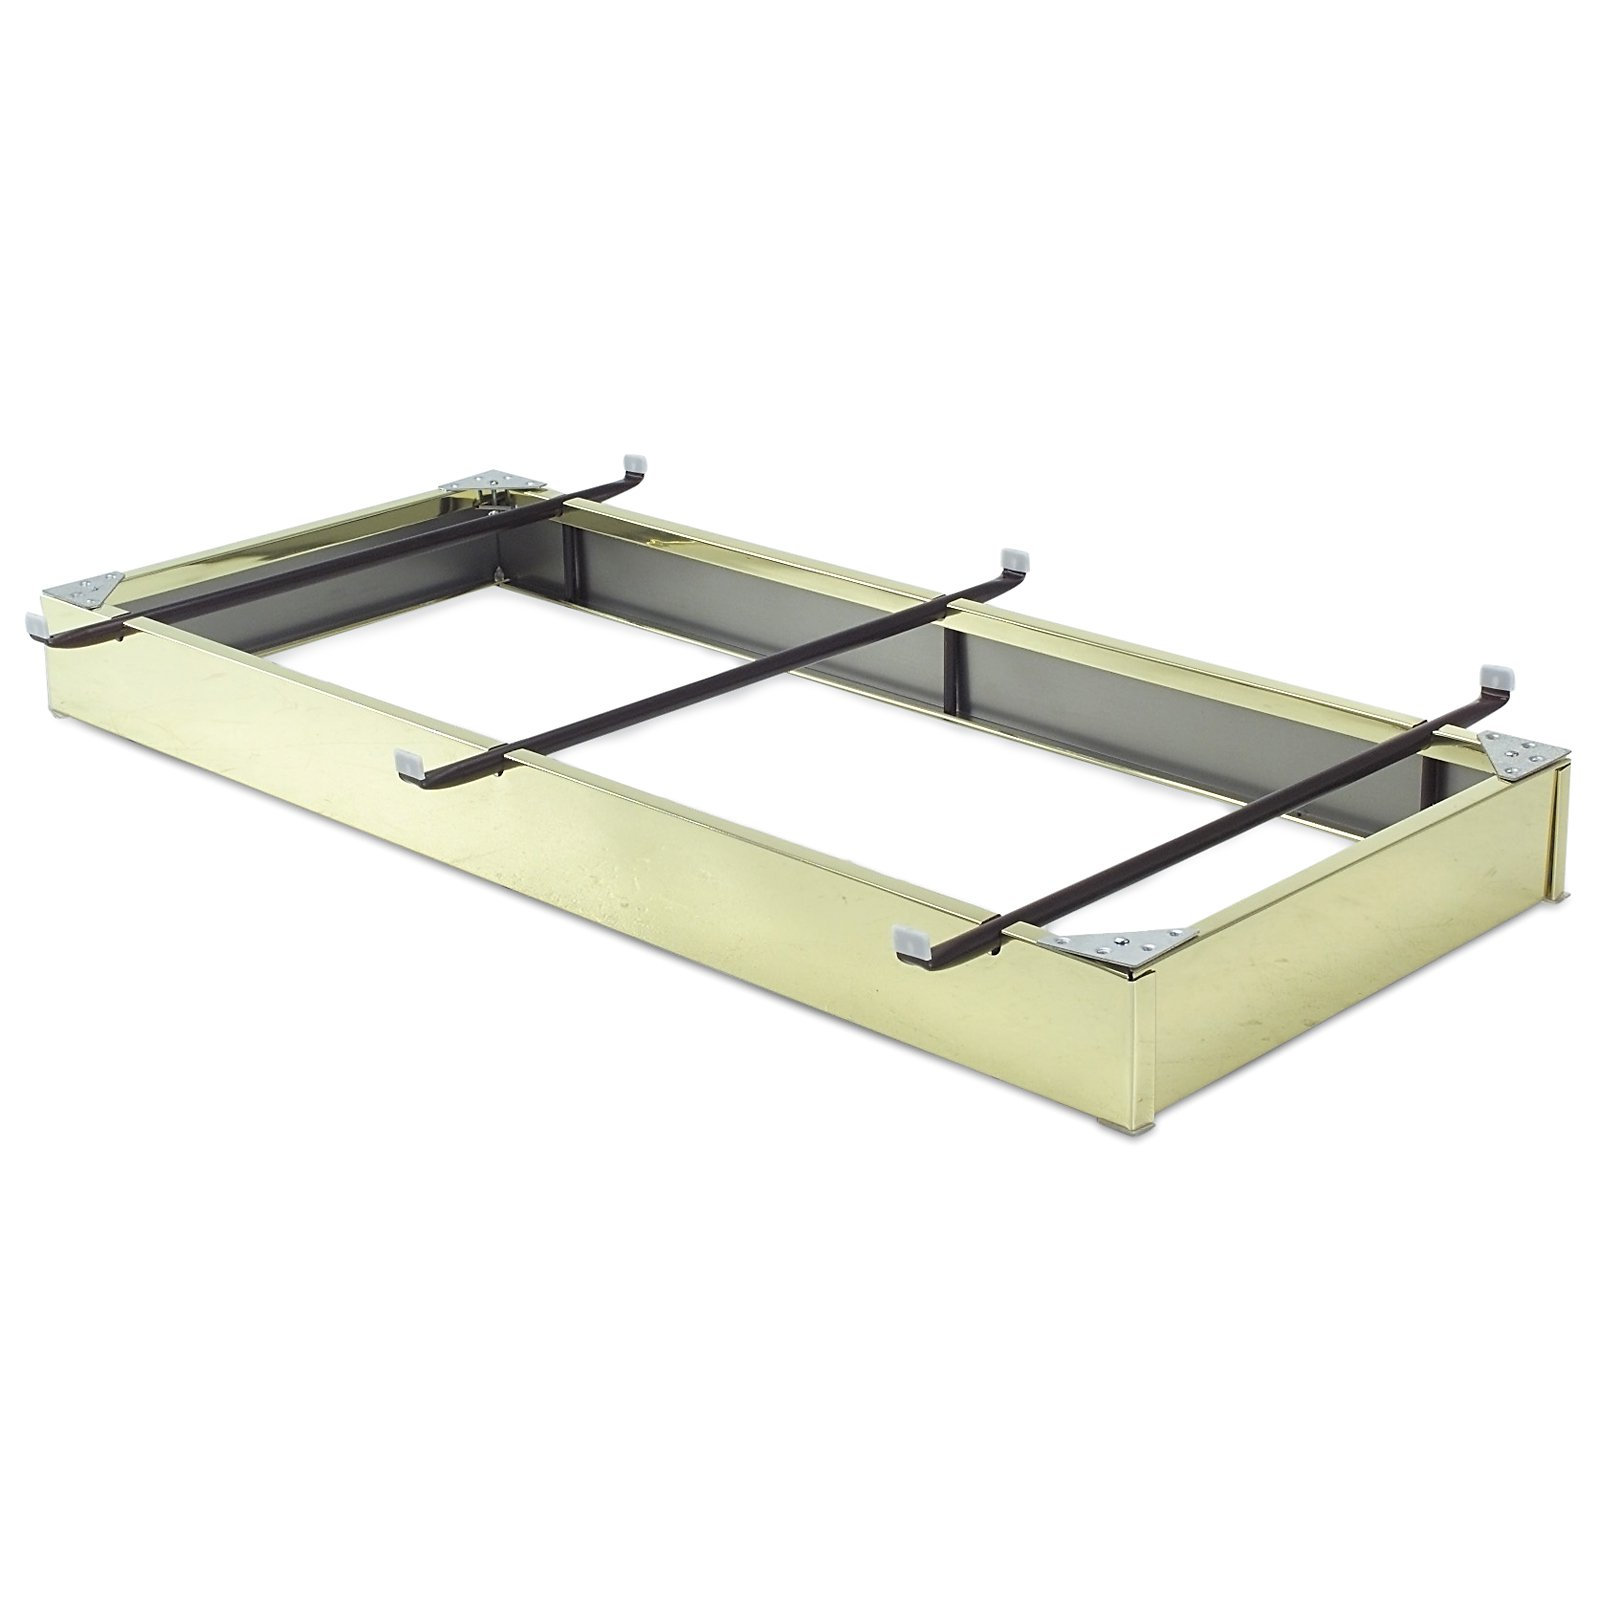 Image of: Design Bed Frame Riser